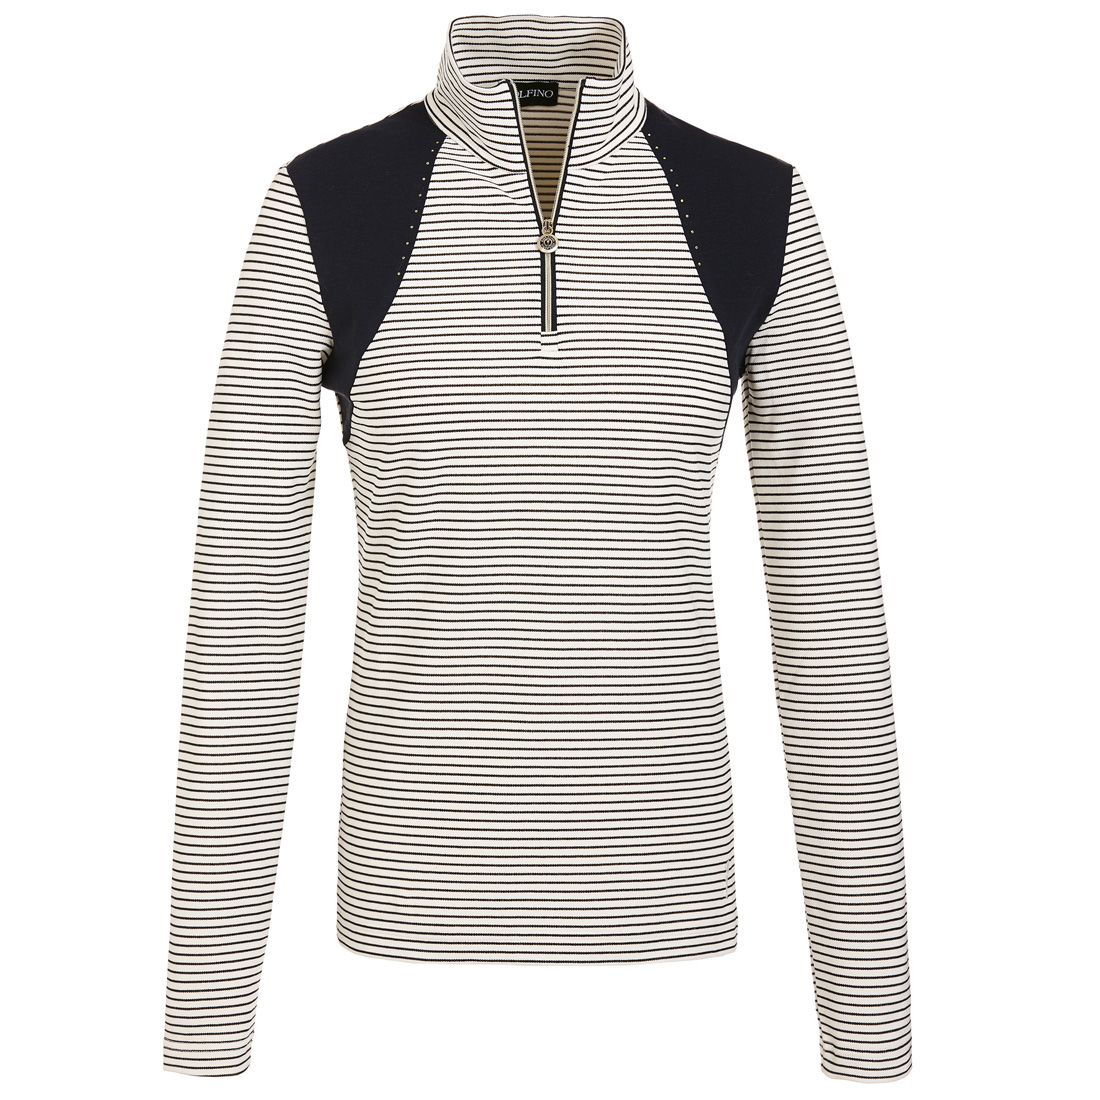 Dry comfort ladies' golf underlayer with fashionable stripes and rhinestone trim